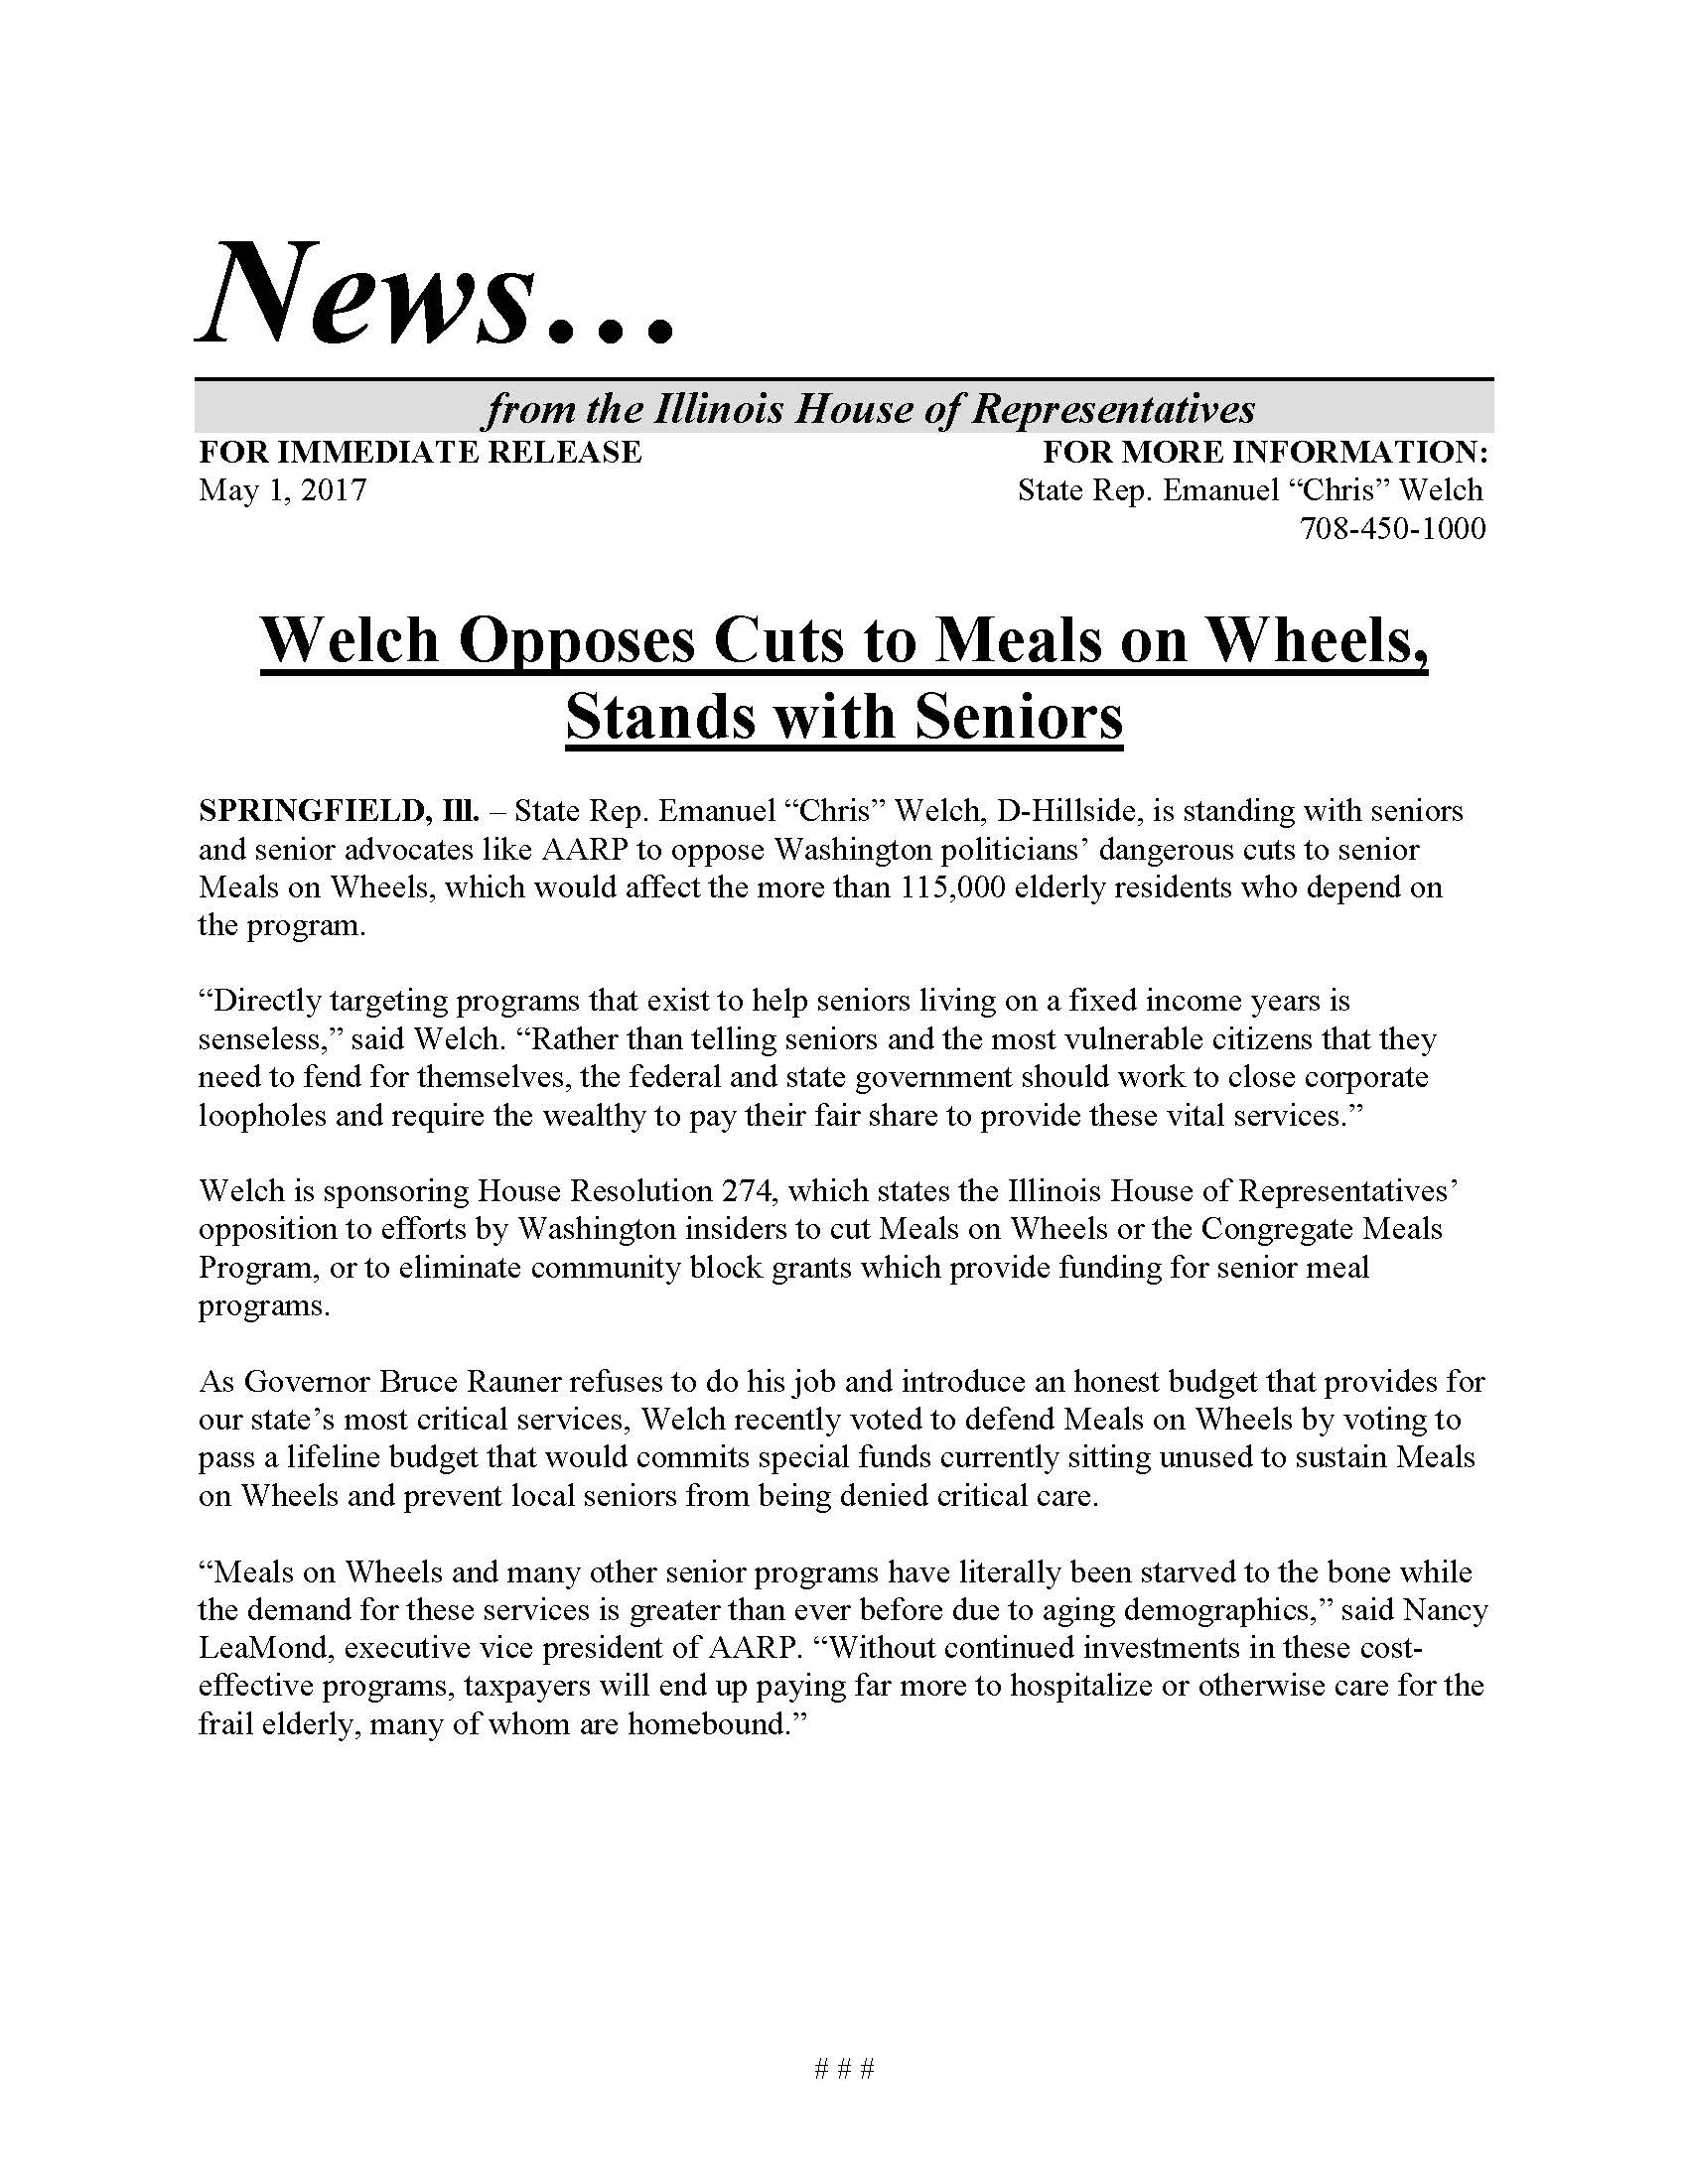 Welch Opposes Cuts to Meals on Wheels  (May 1, 2017)